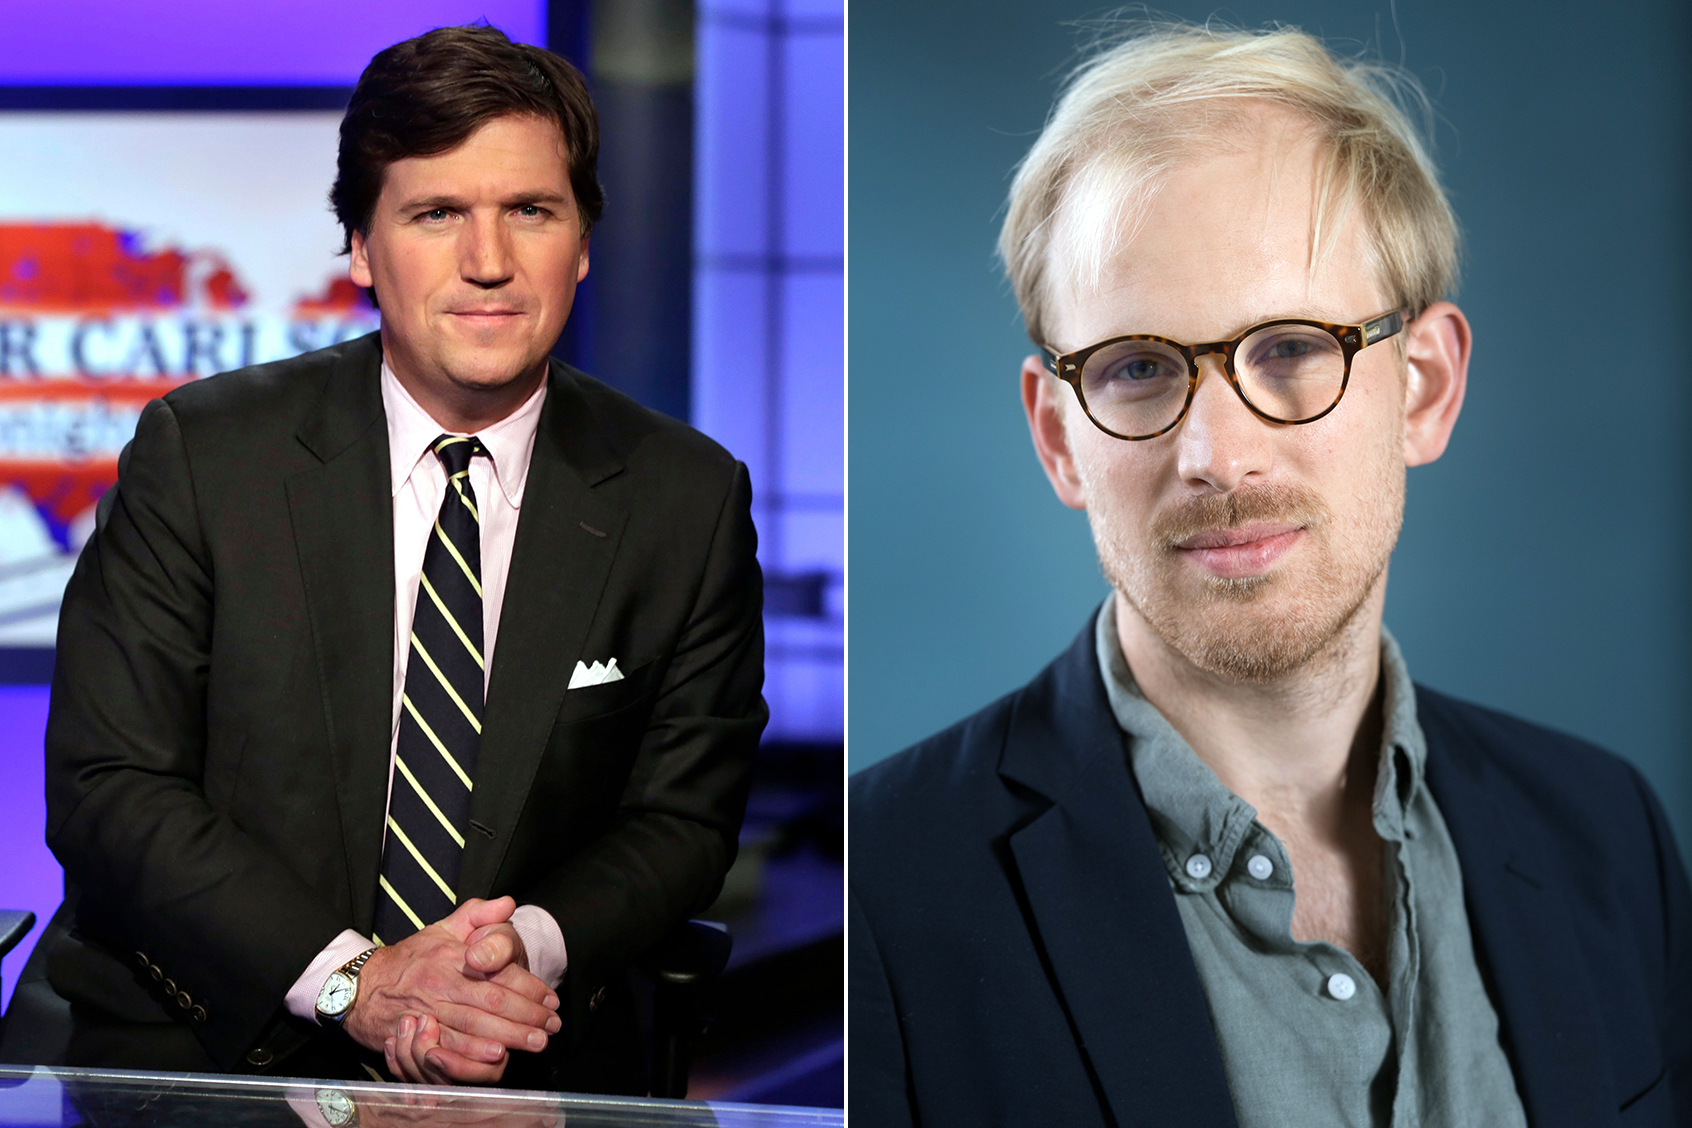 A Historian Dismantled Tucker Carlson, But Fox News Didn't Broadcast It